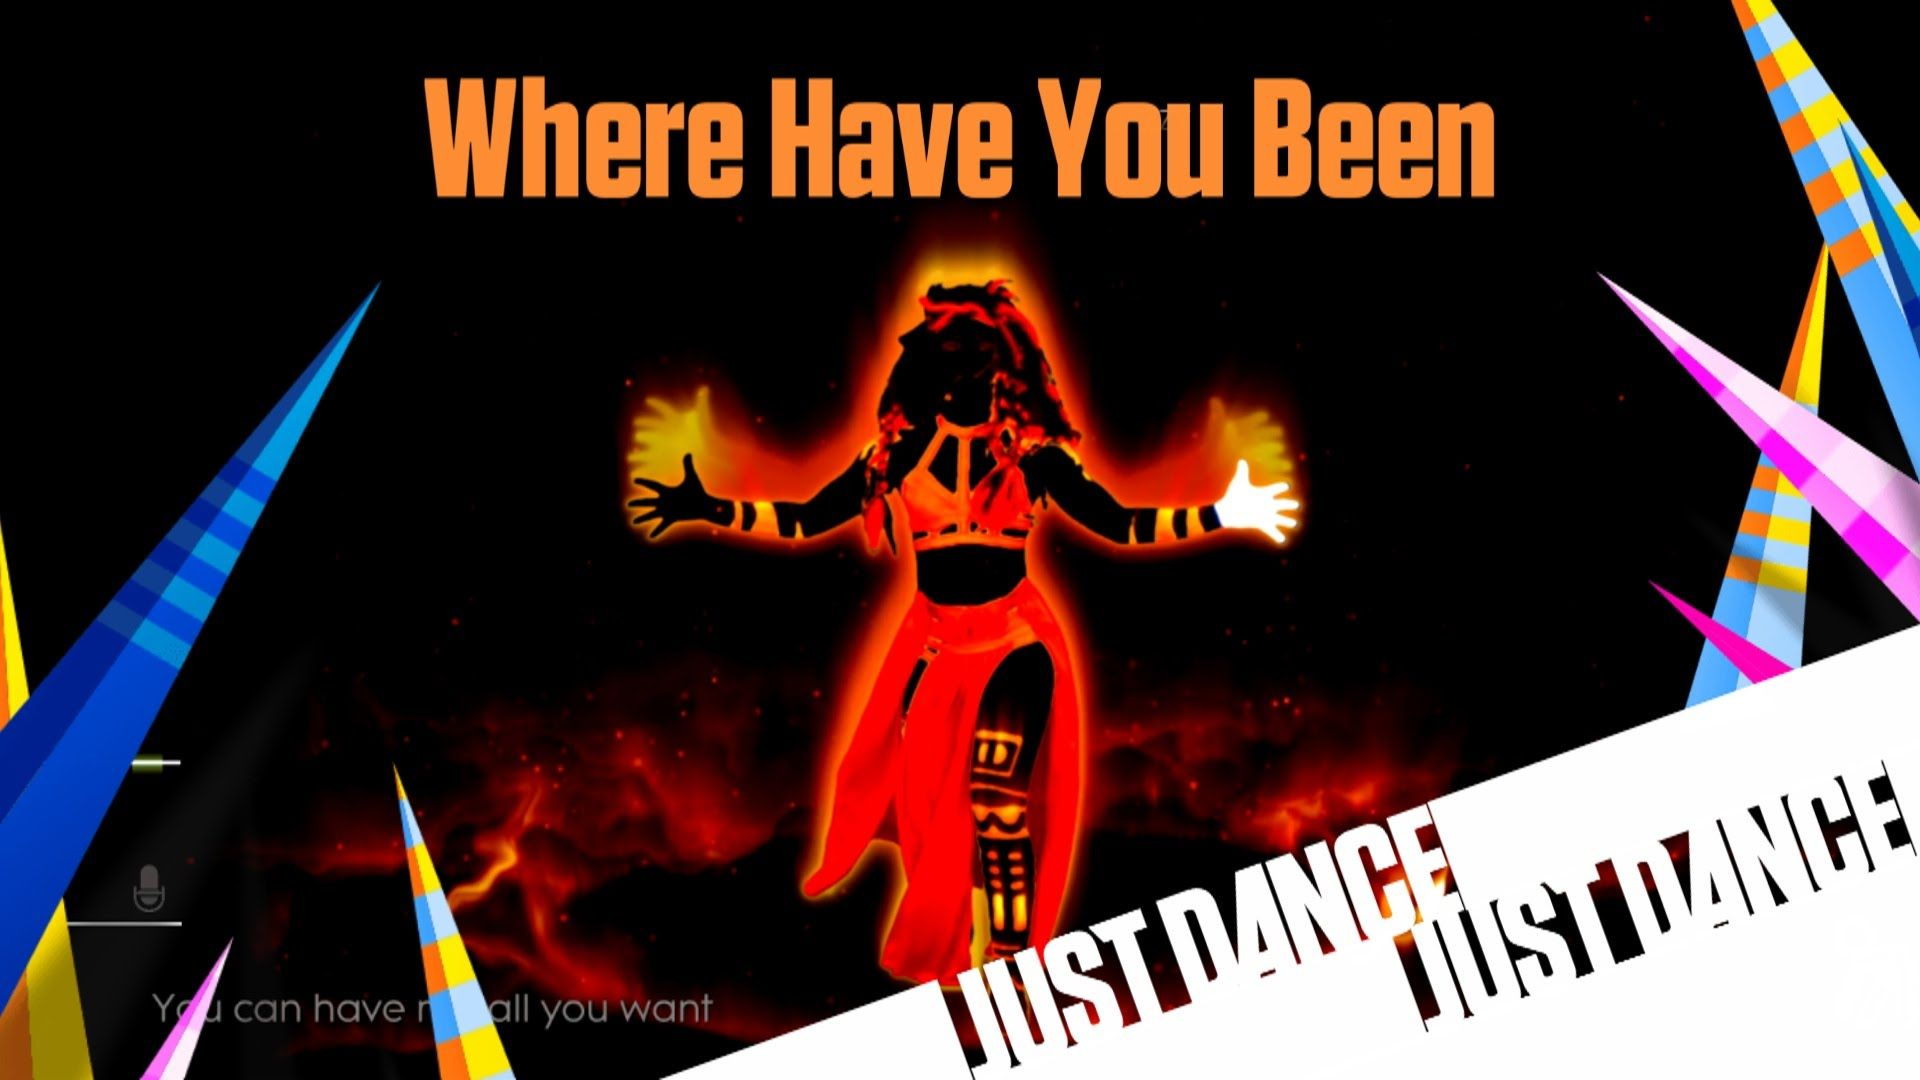 Just Dance 2014 - Where Have You Been